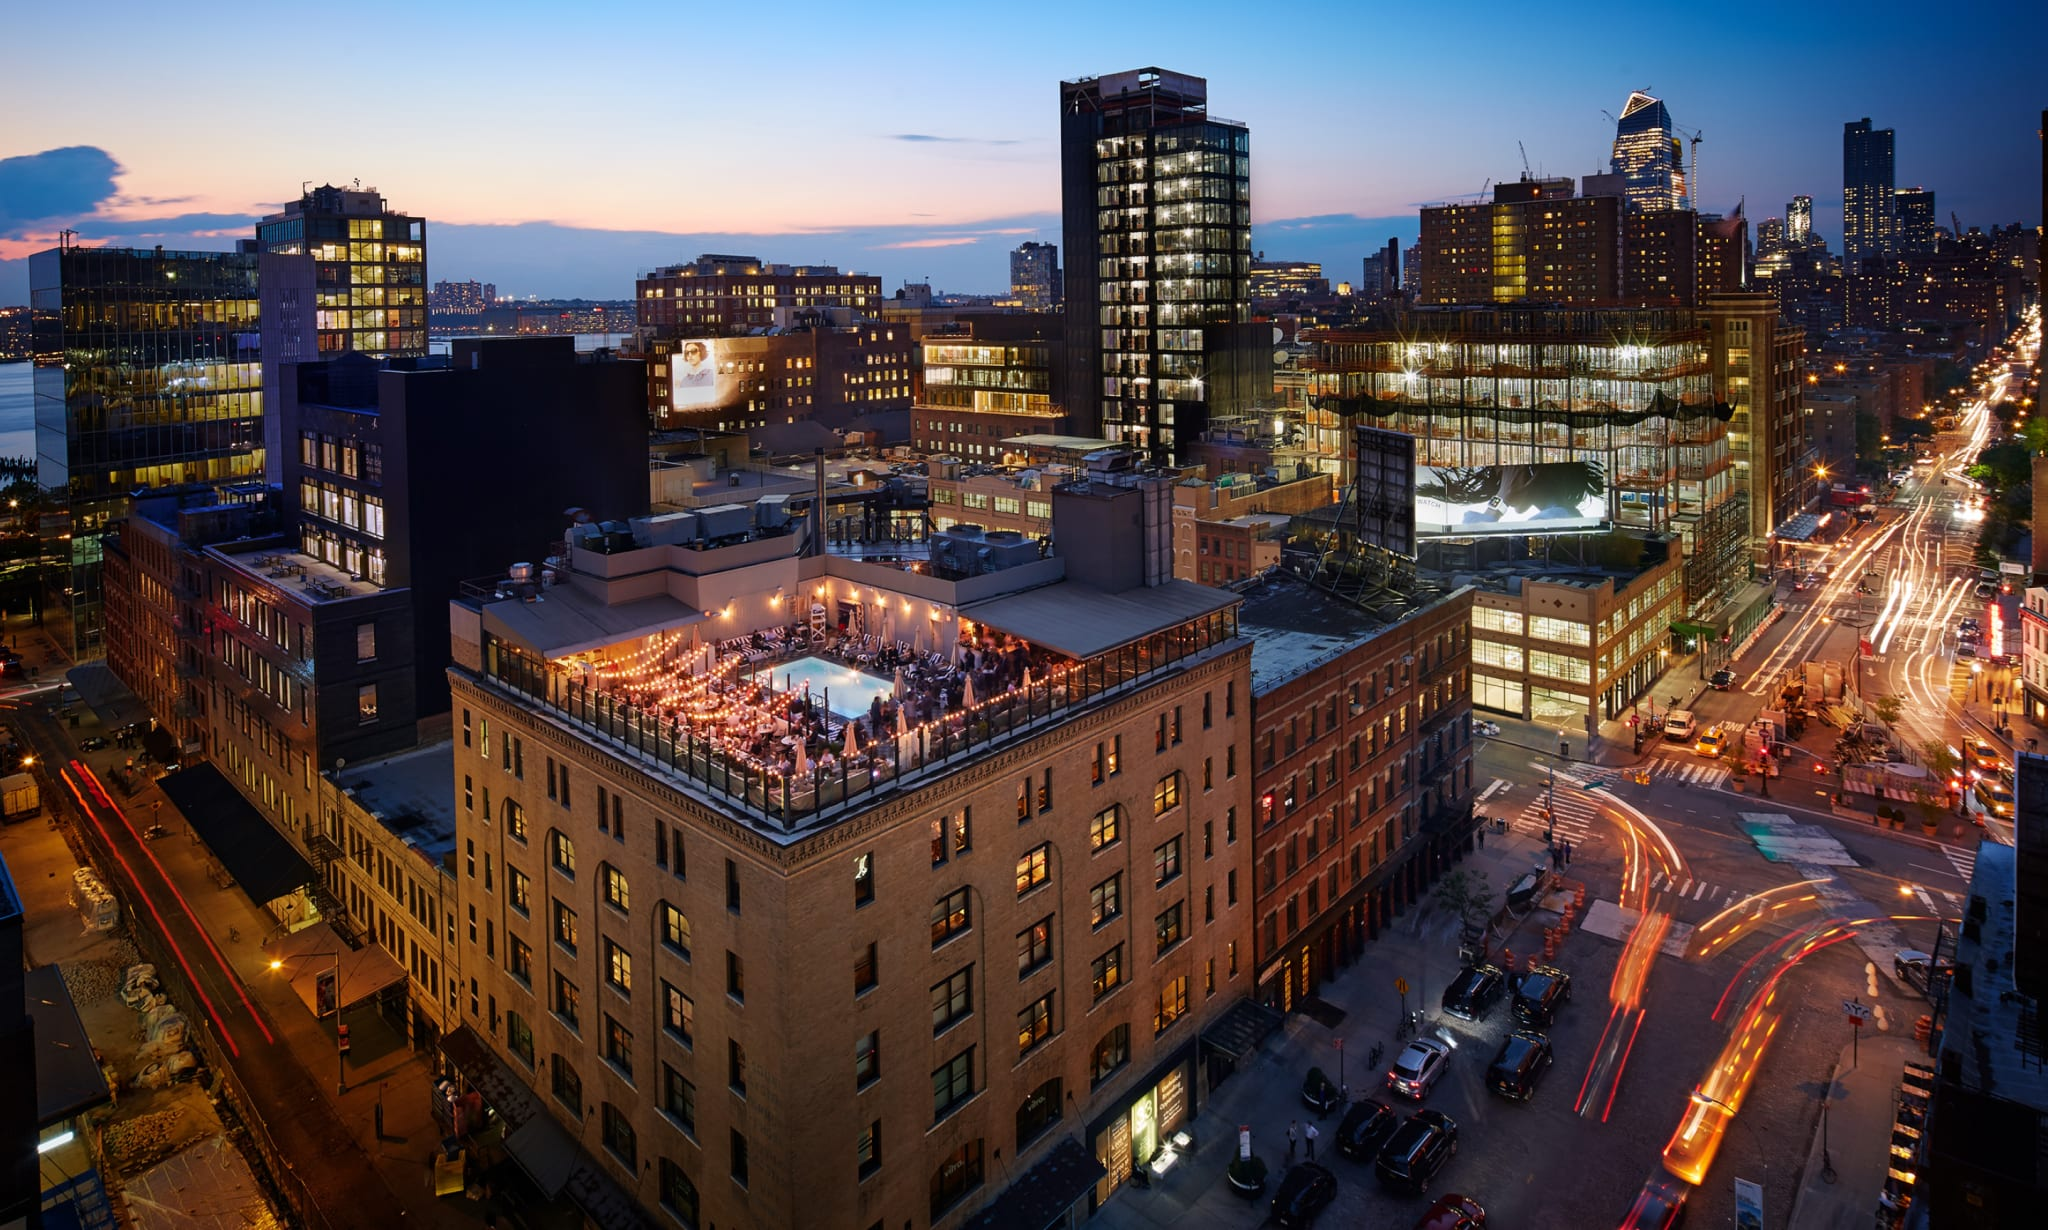 Aerial view of rooftop of a building in New York at night.